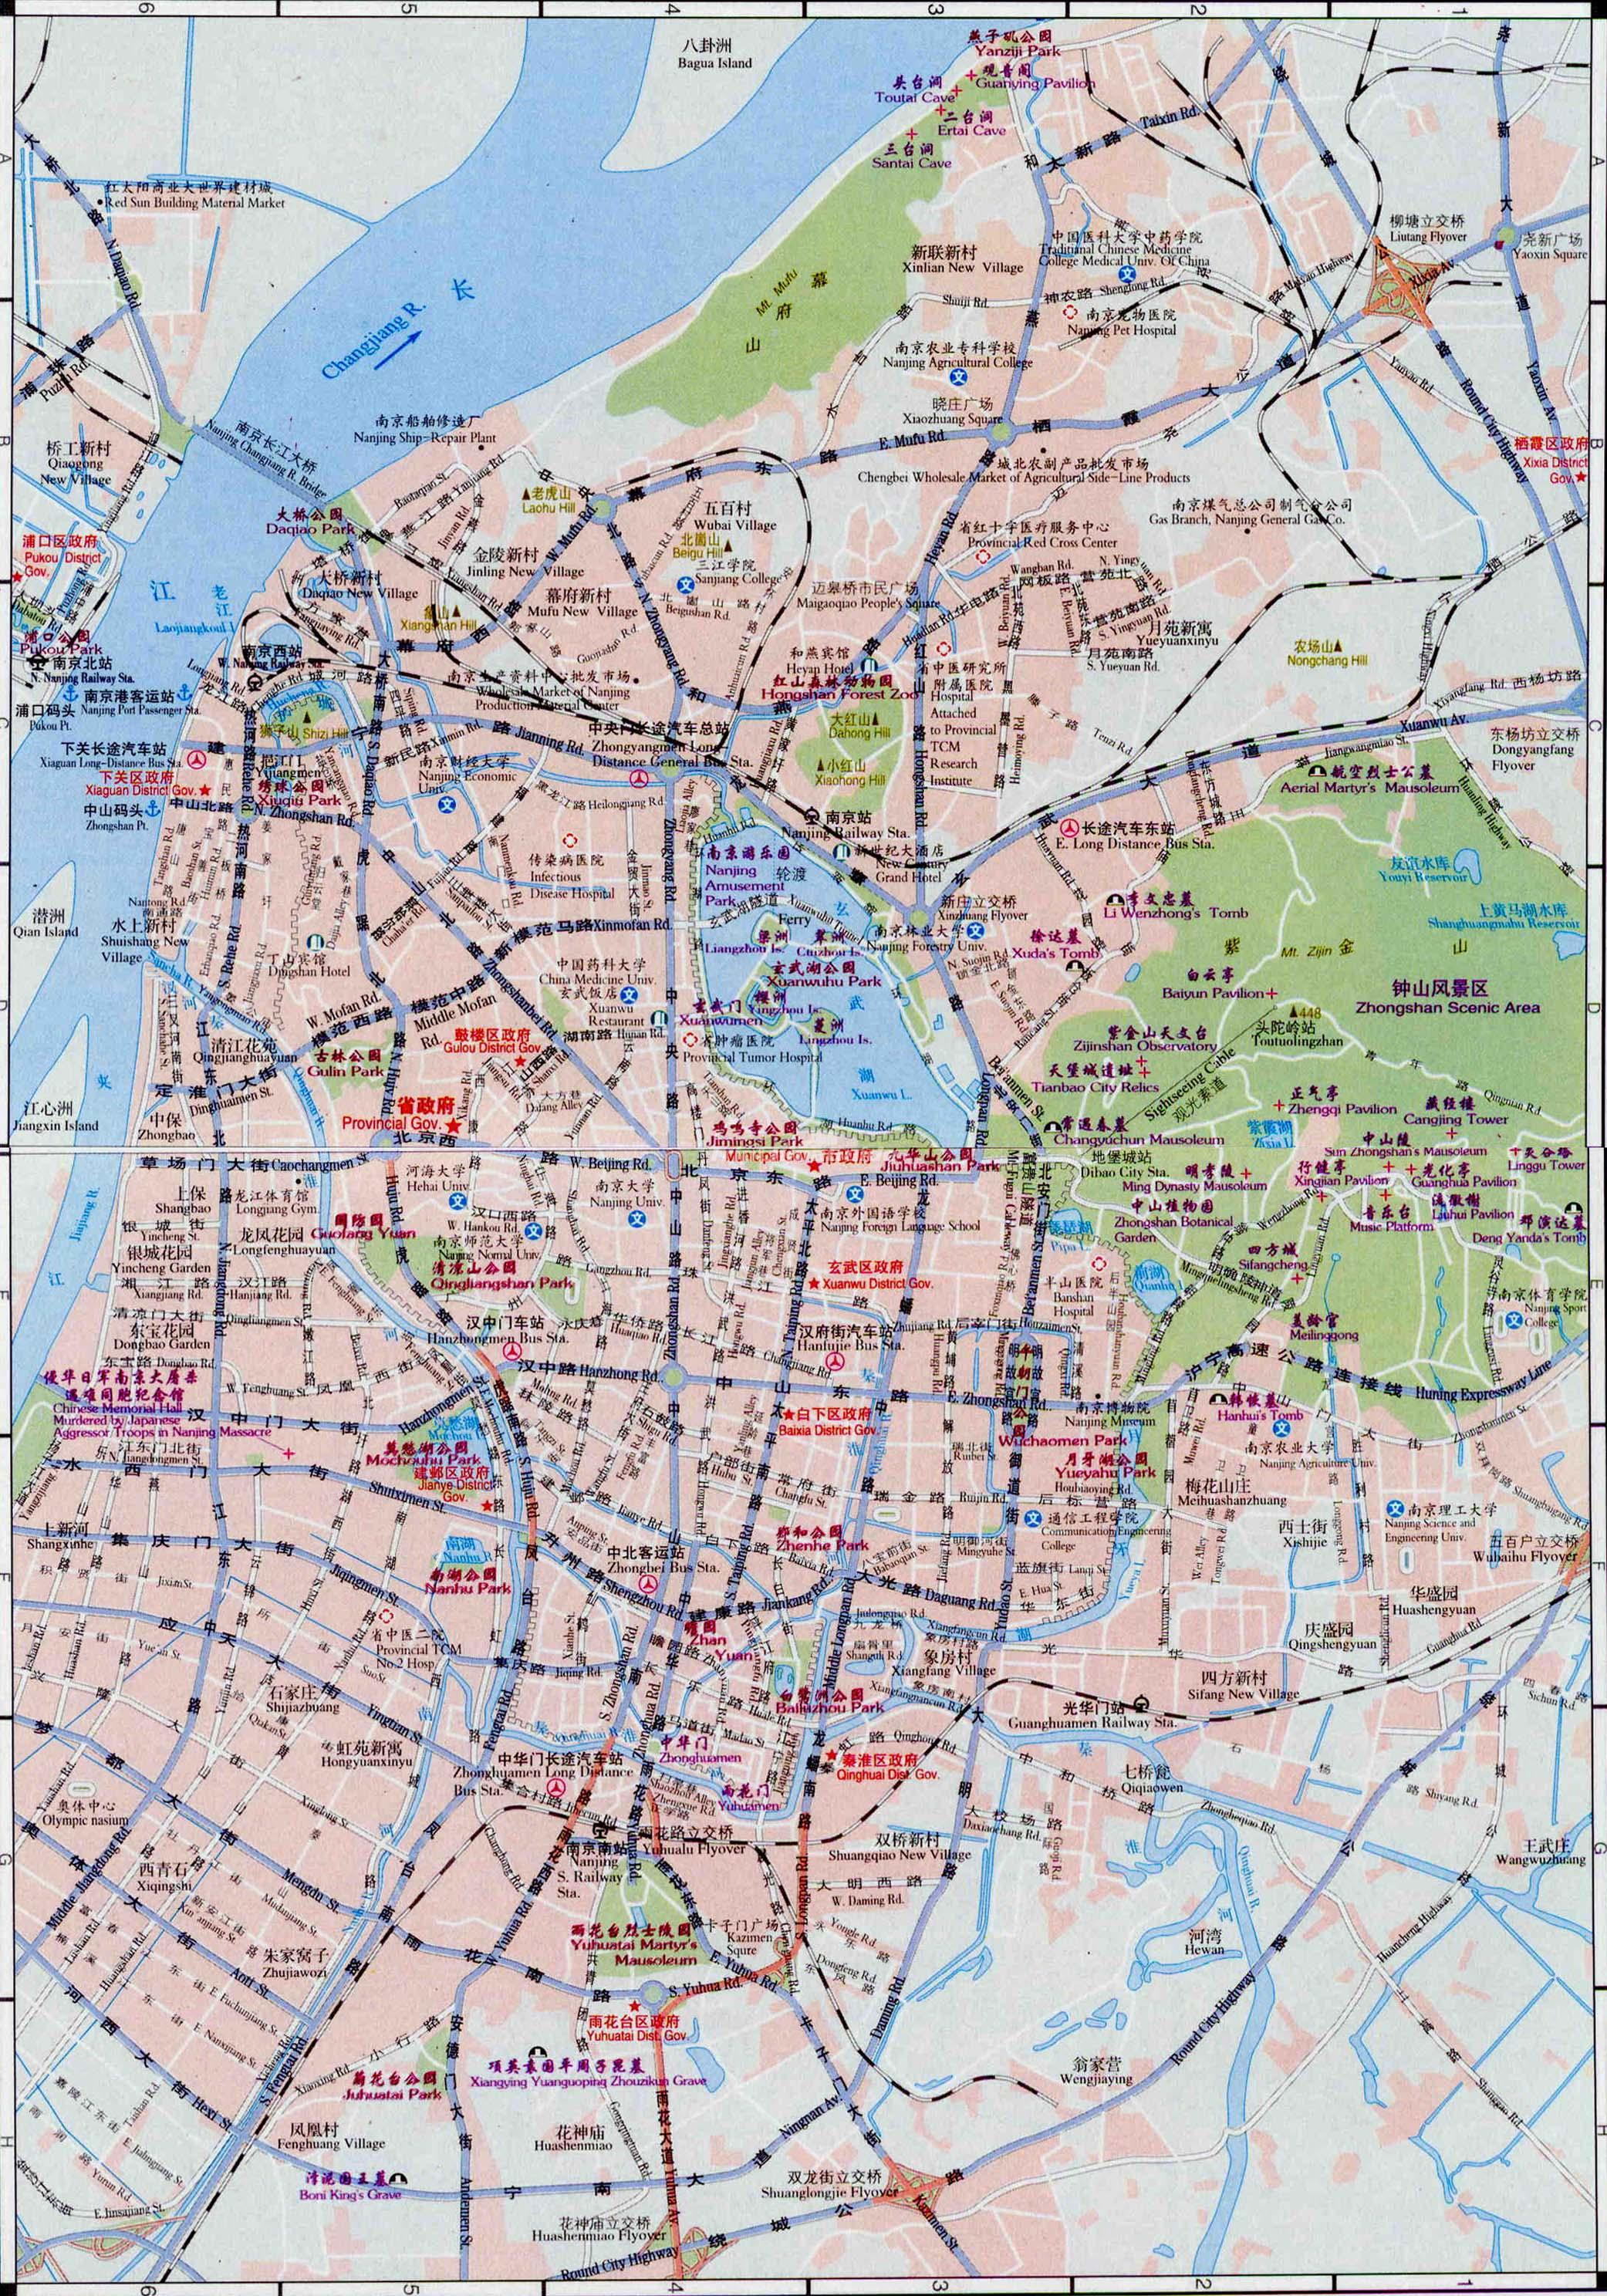 Nanjing China Map Maps Of Nanjing - Nanjing map